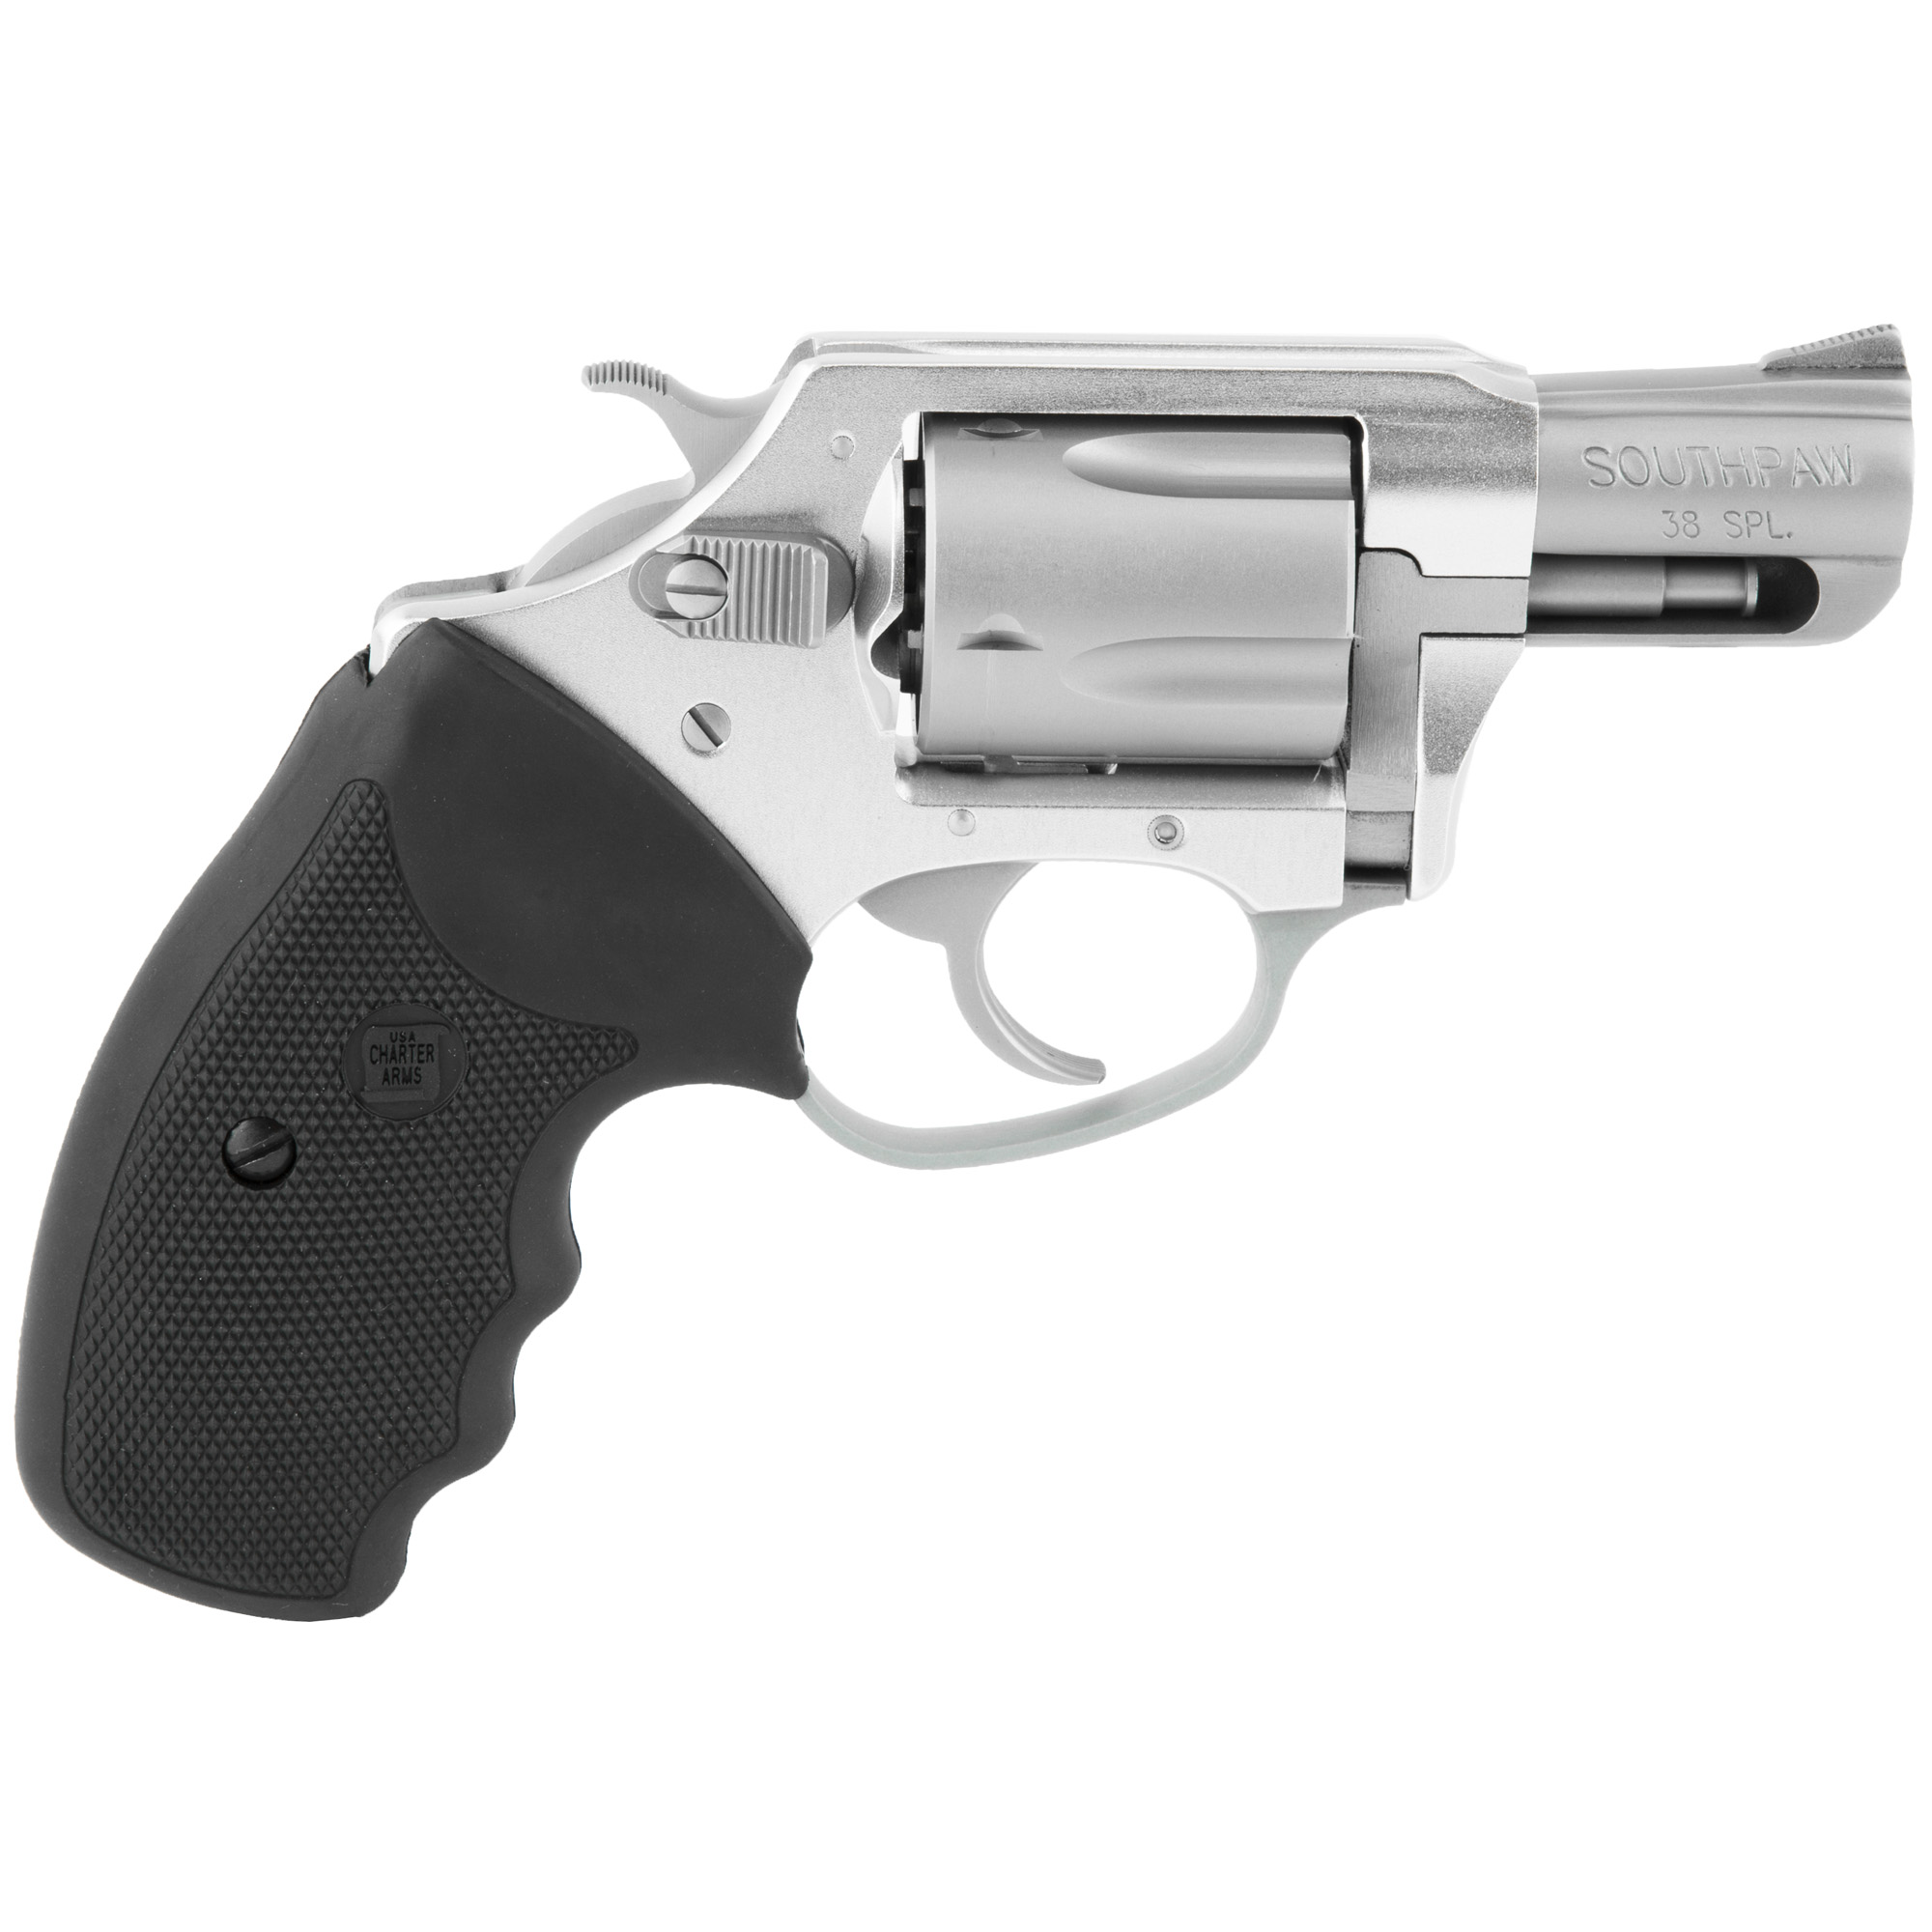 Charter Arms Southpaw left handed .38 special revolver